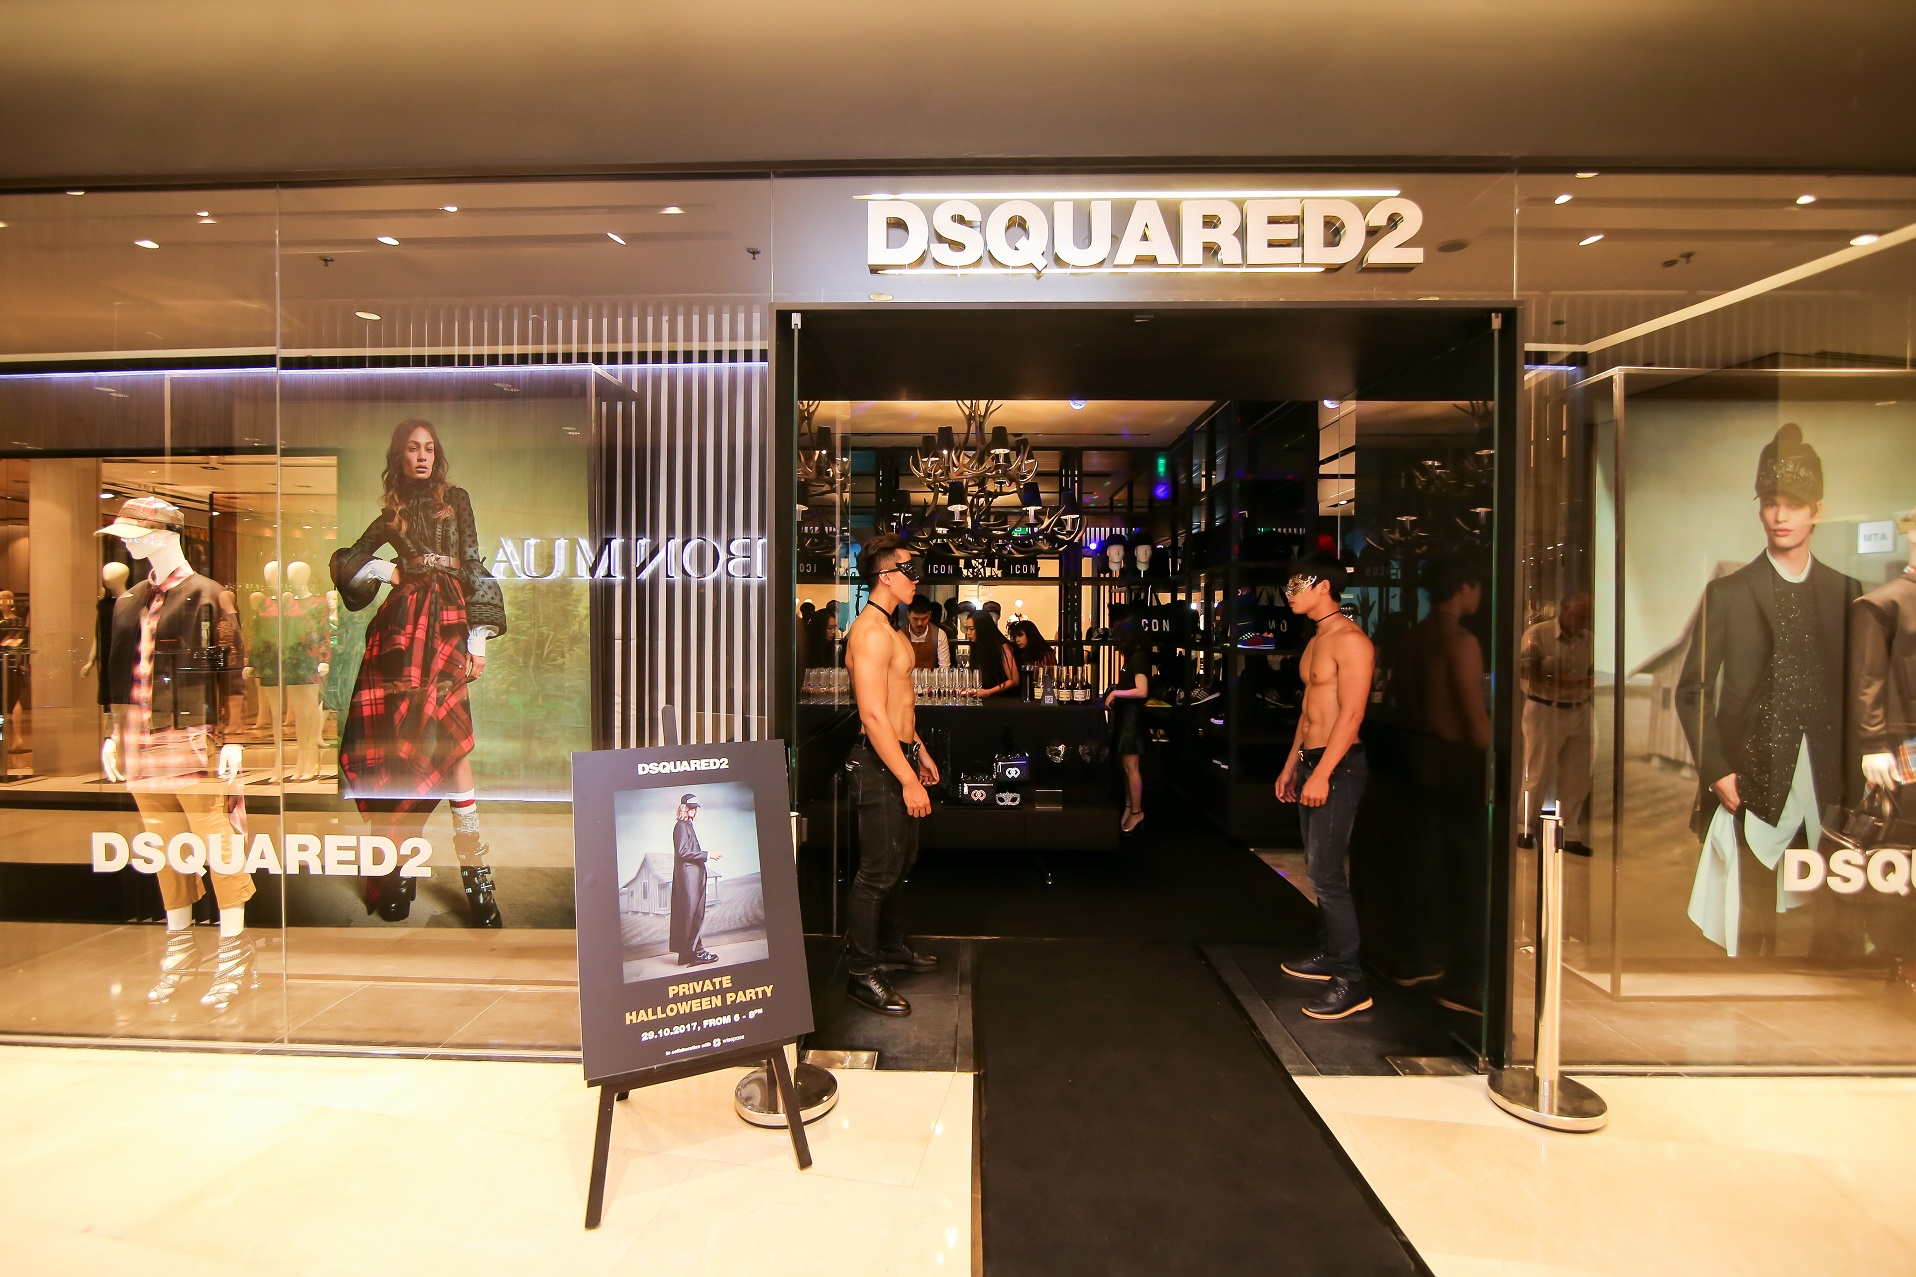 20171102-thuong-hieu-dsquared2-11